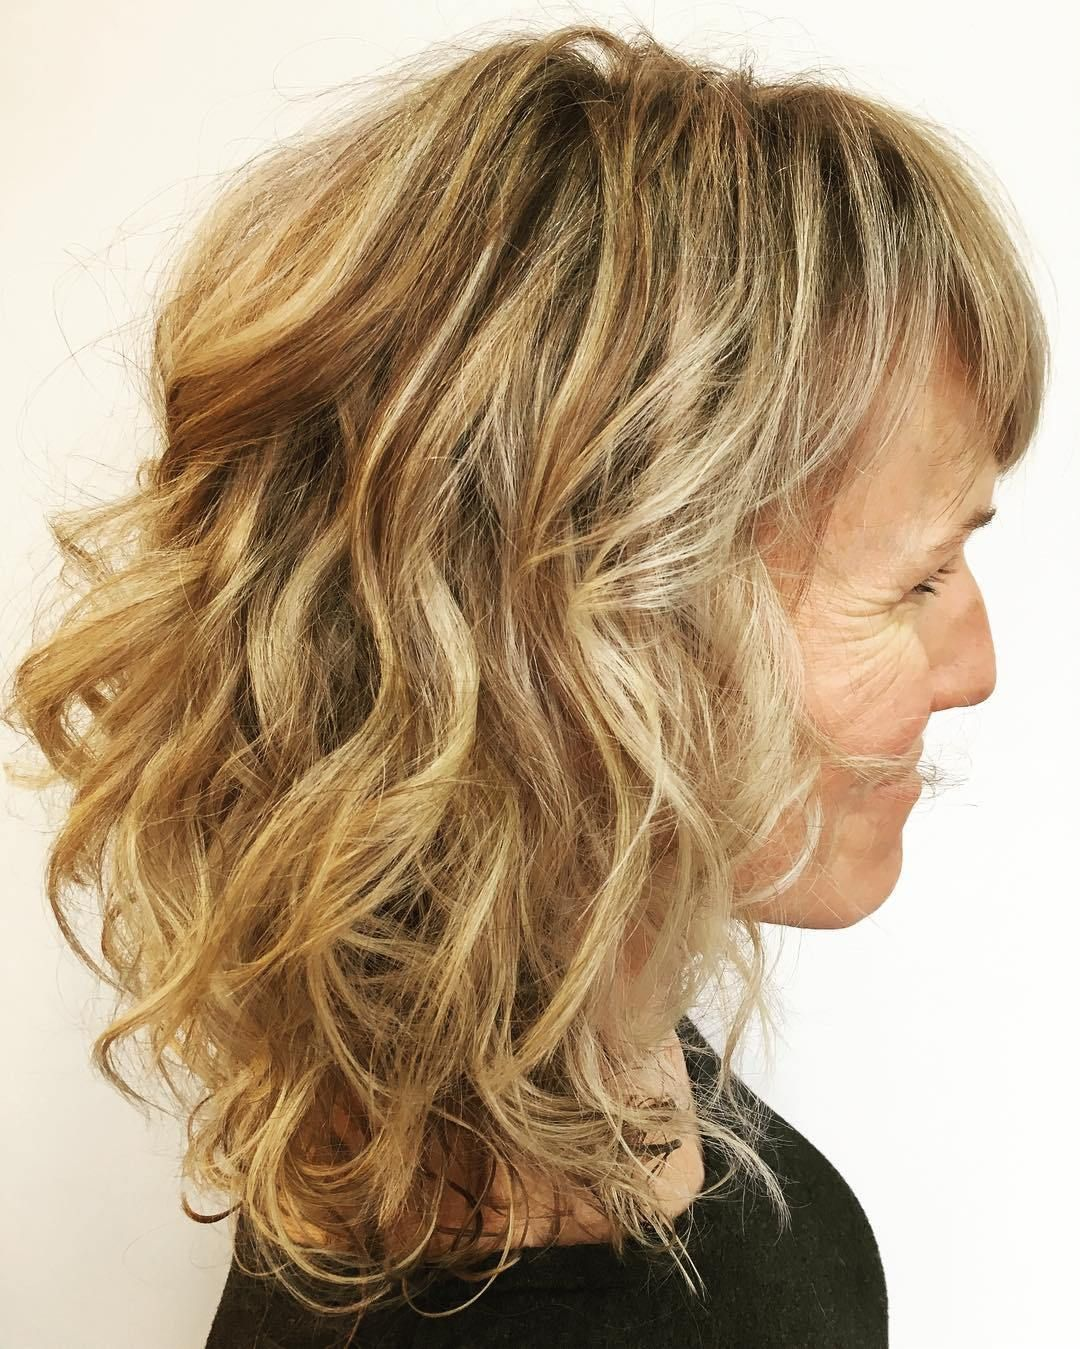 Over medium curly hairstyle with bangs hair dye ideas pinterest